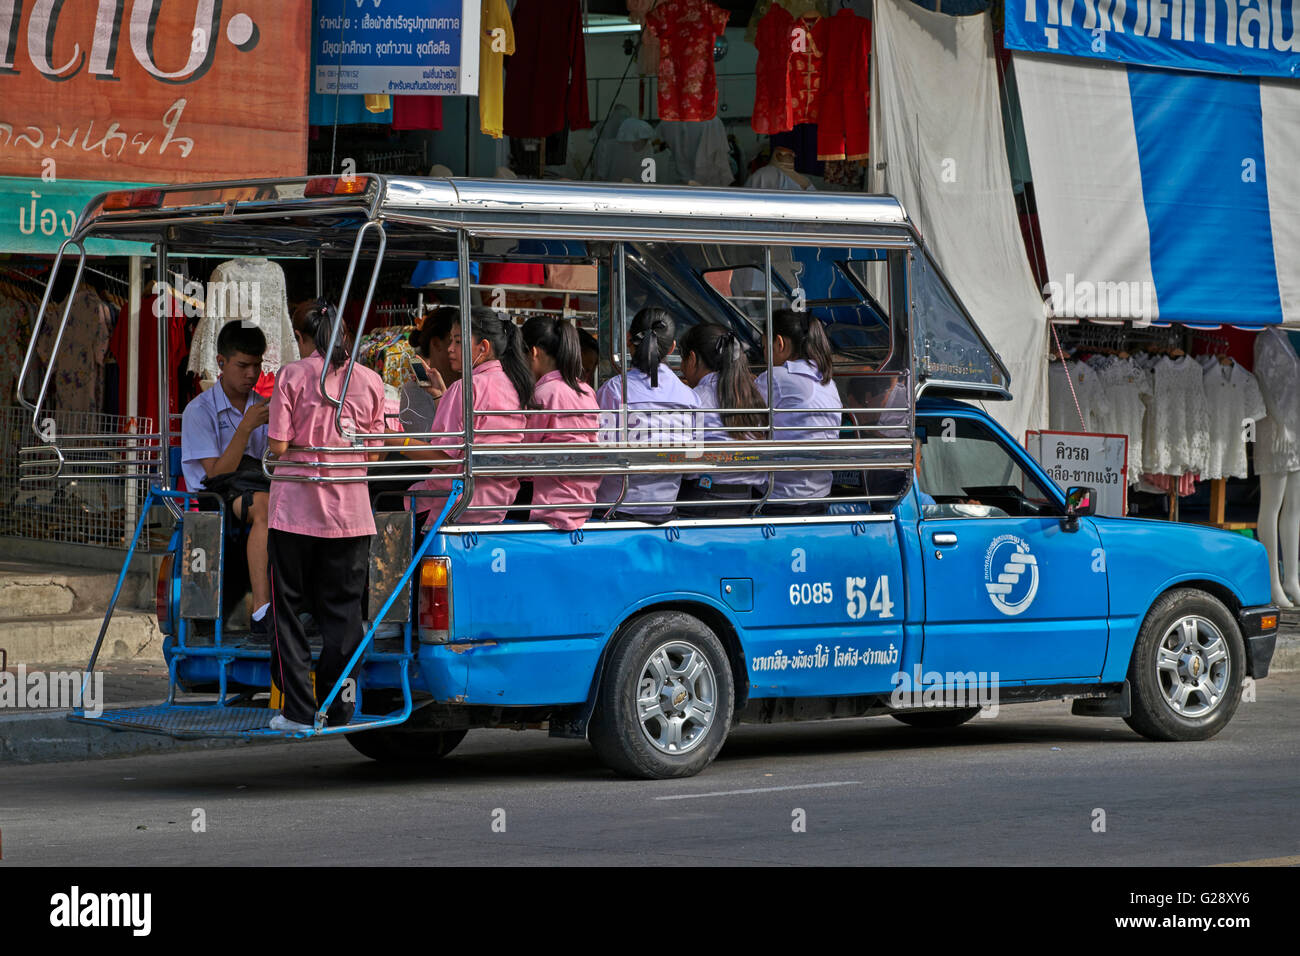 Fully loaded Thai songthaew public transport car. Thailand S. E. Asia - Stock Image